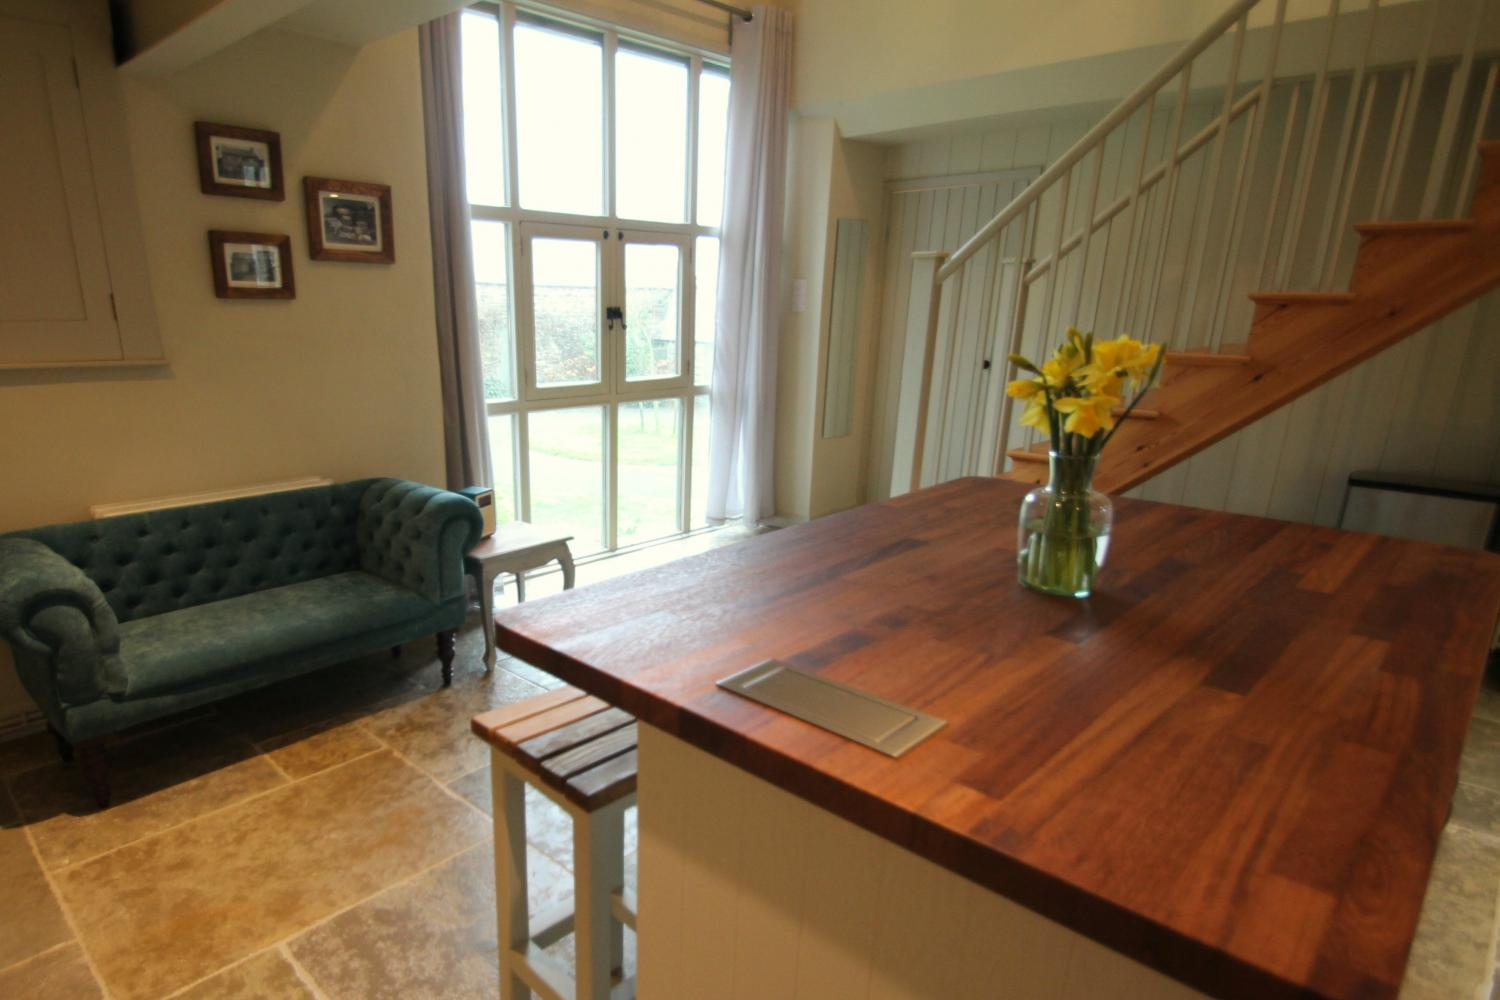 The huge window in the kitchen replaces the former barn doors, and looks out over the farm buildings.